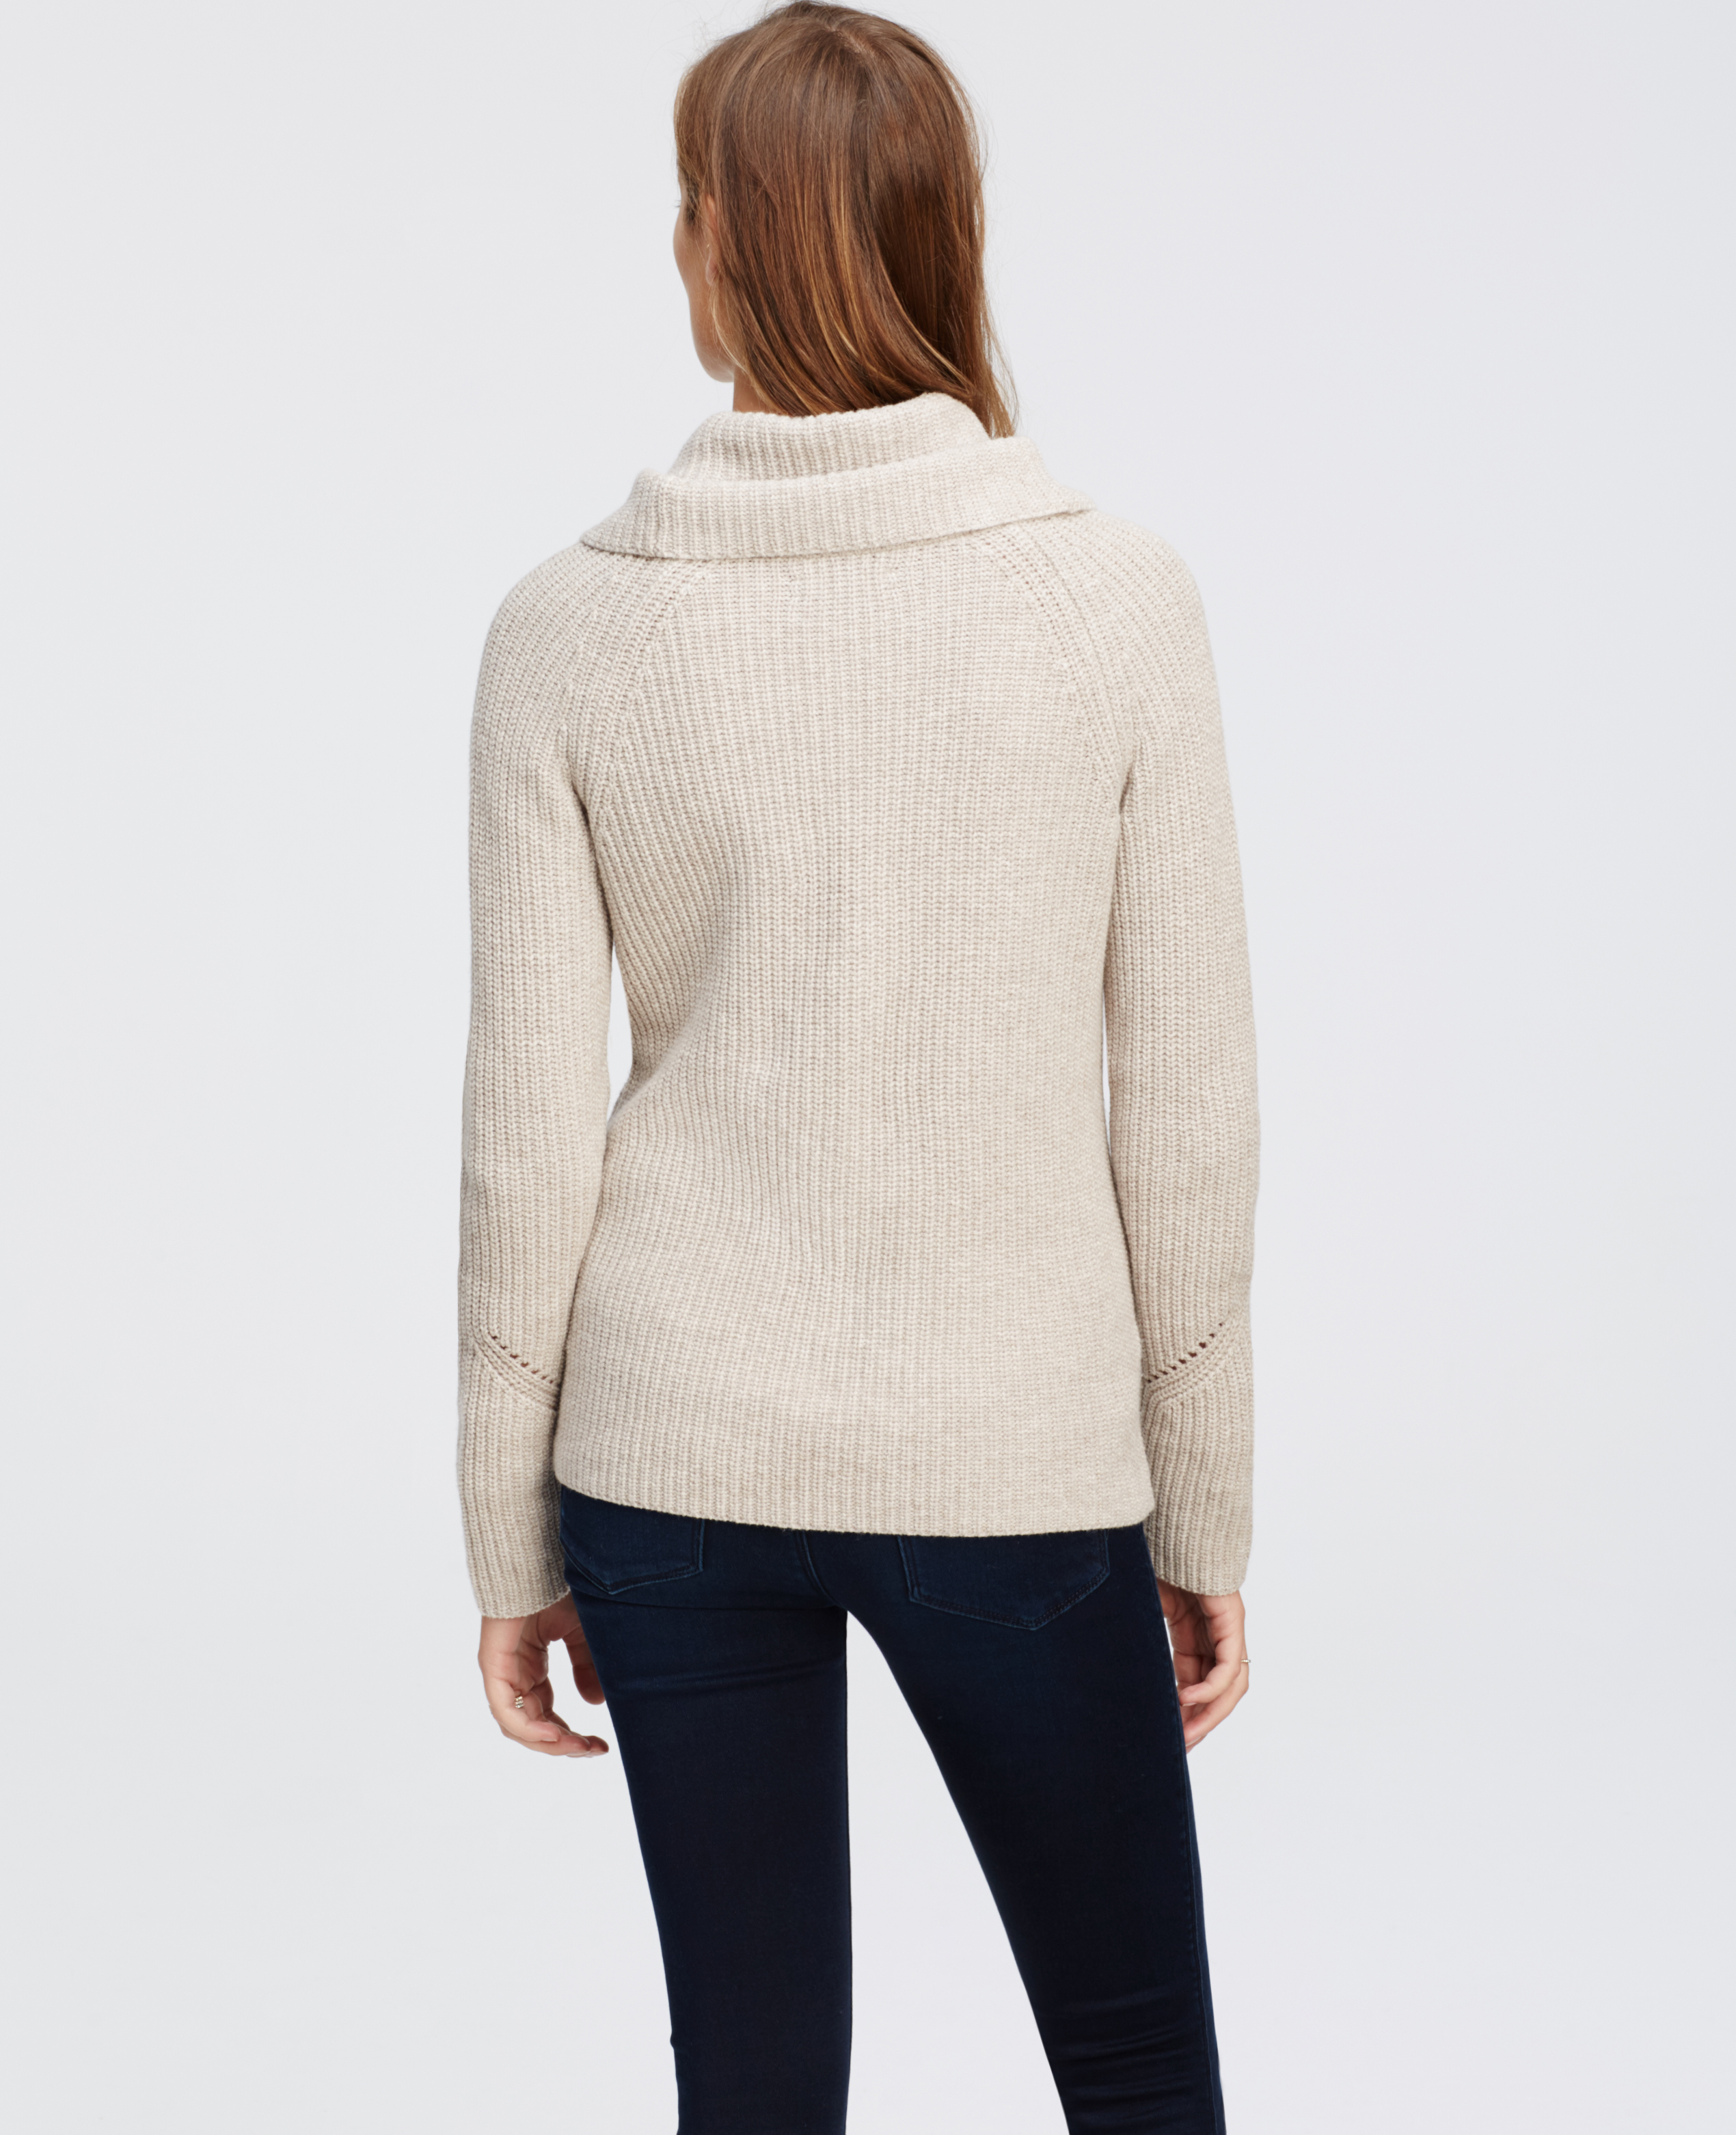 Ann taylor Petite Cowl Neck Sweater in Natural | Lyst